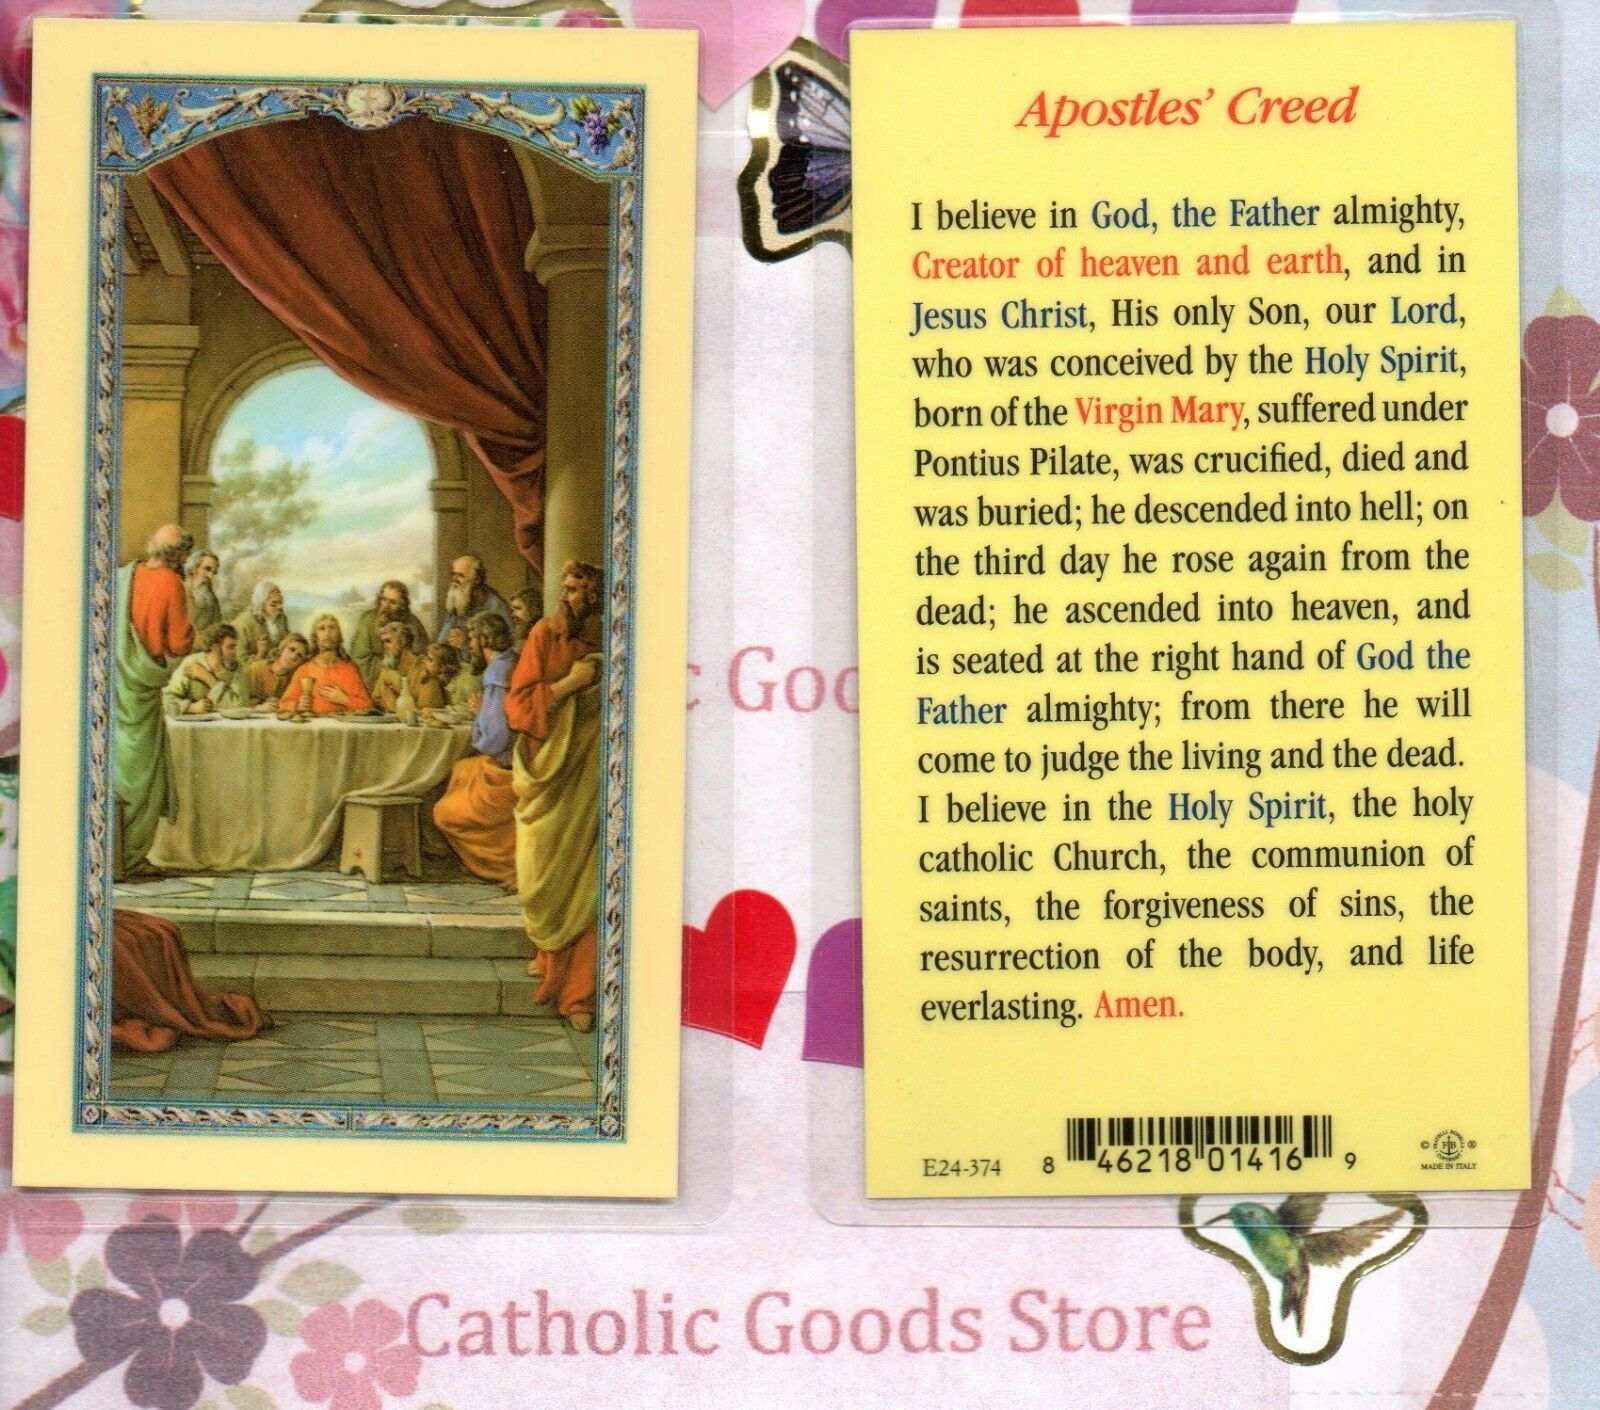 LAST SUPPER - The Apostles\' Creed - Laminated Holy Card - $1.40 ...